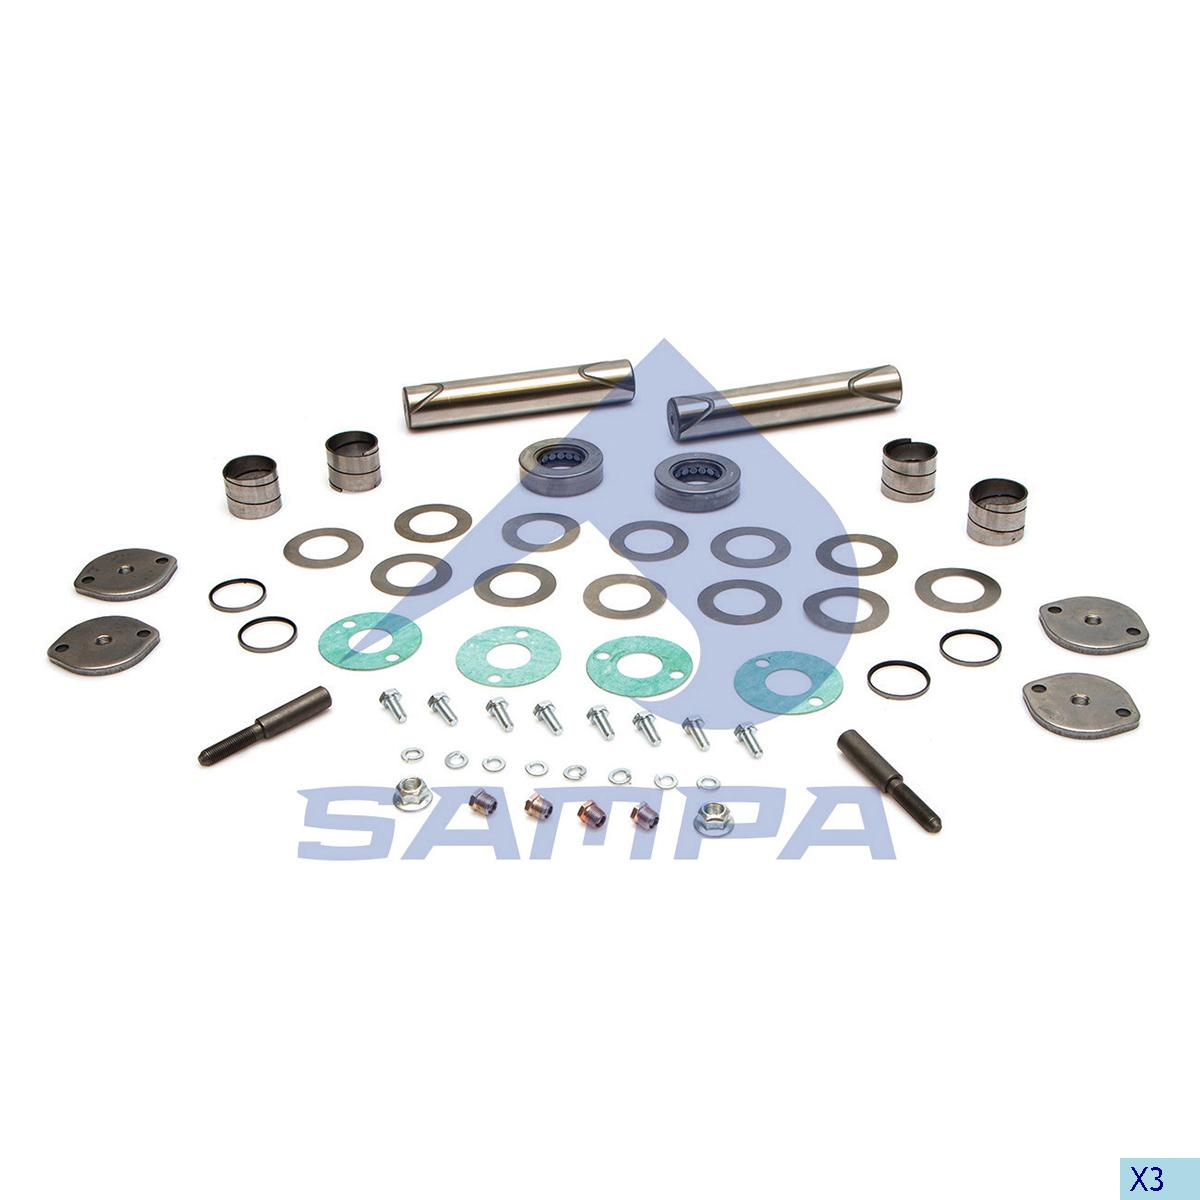 King Pin Kit, Axle Steering Knuckle, Kaiser, Power Unit